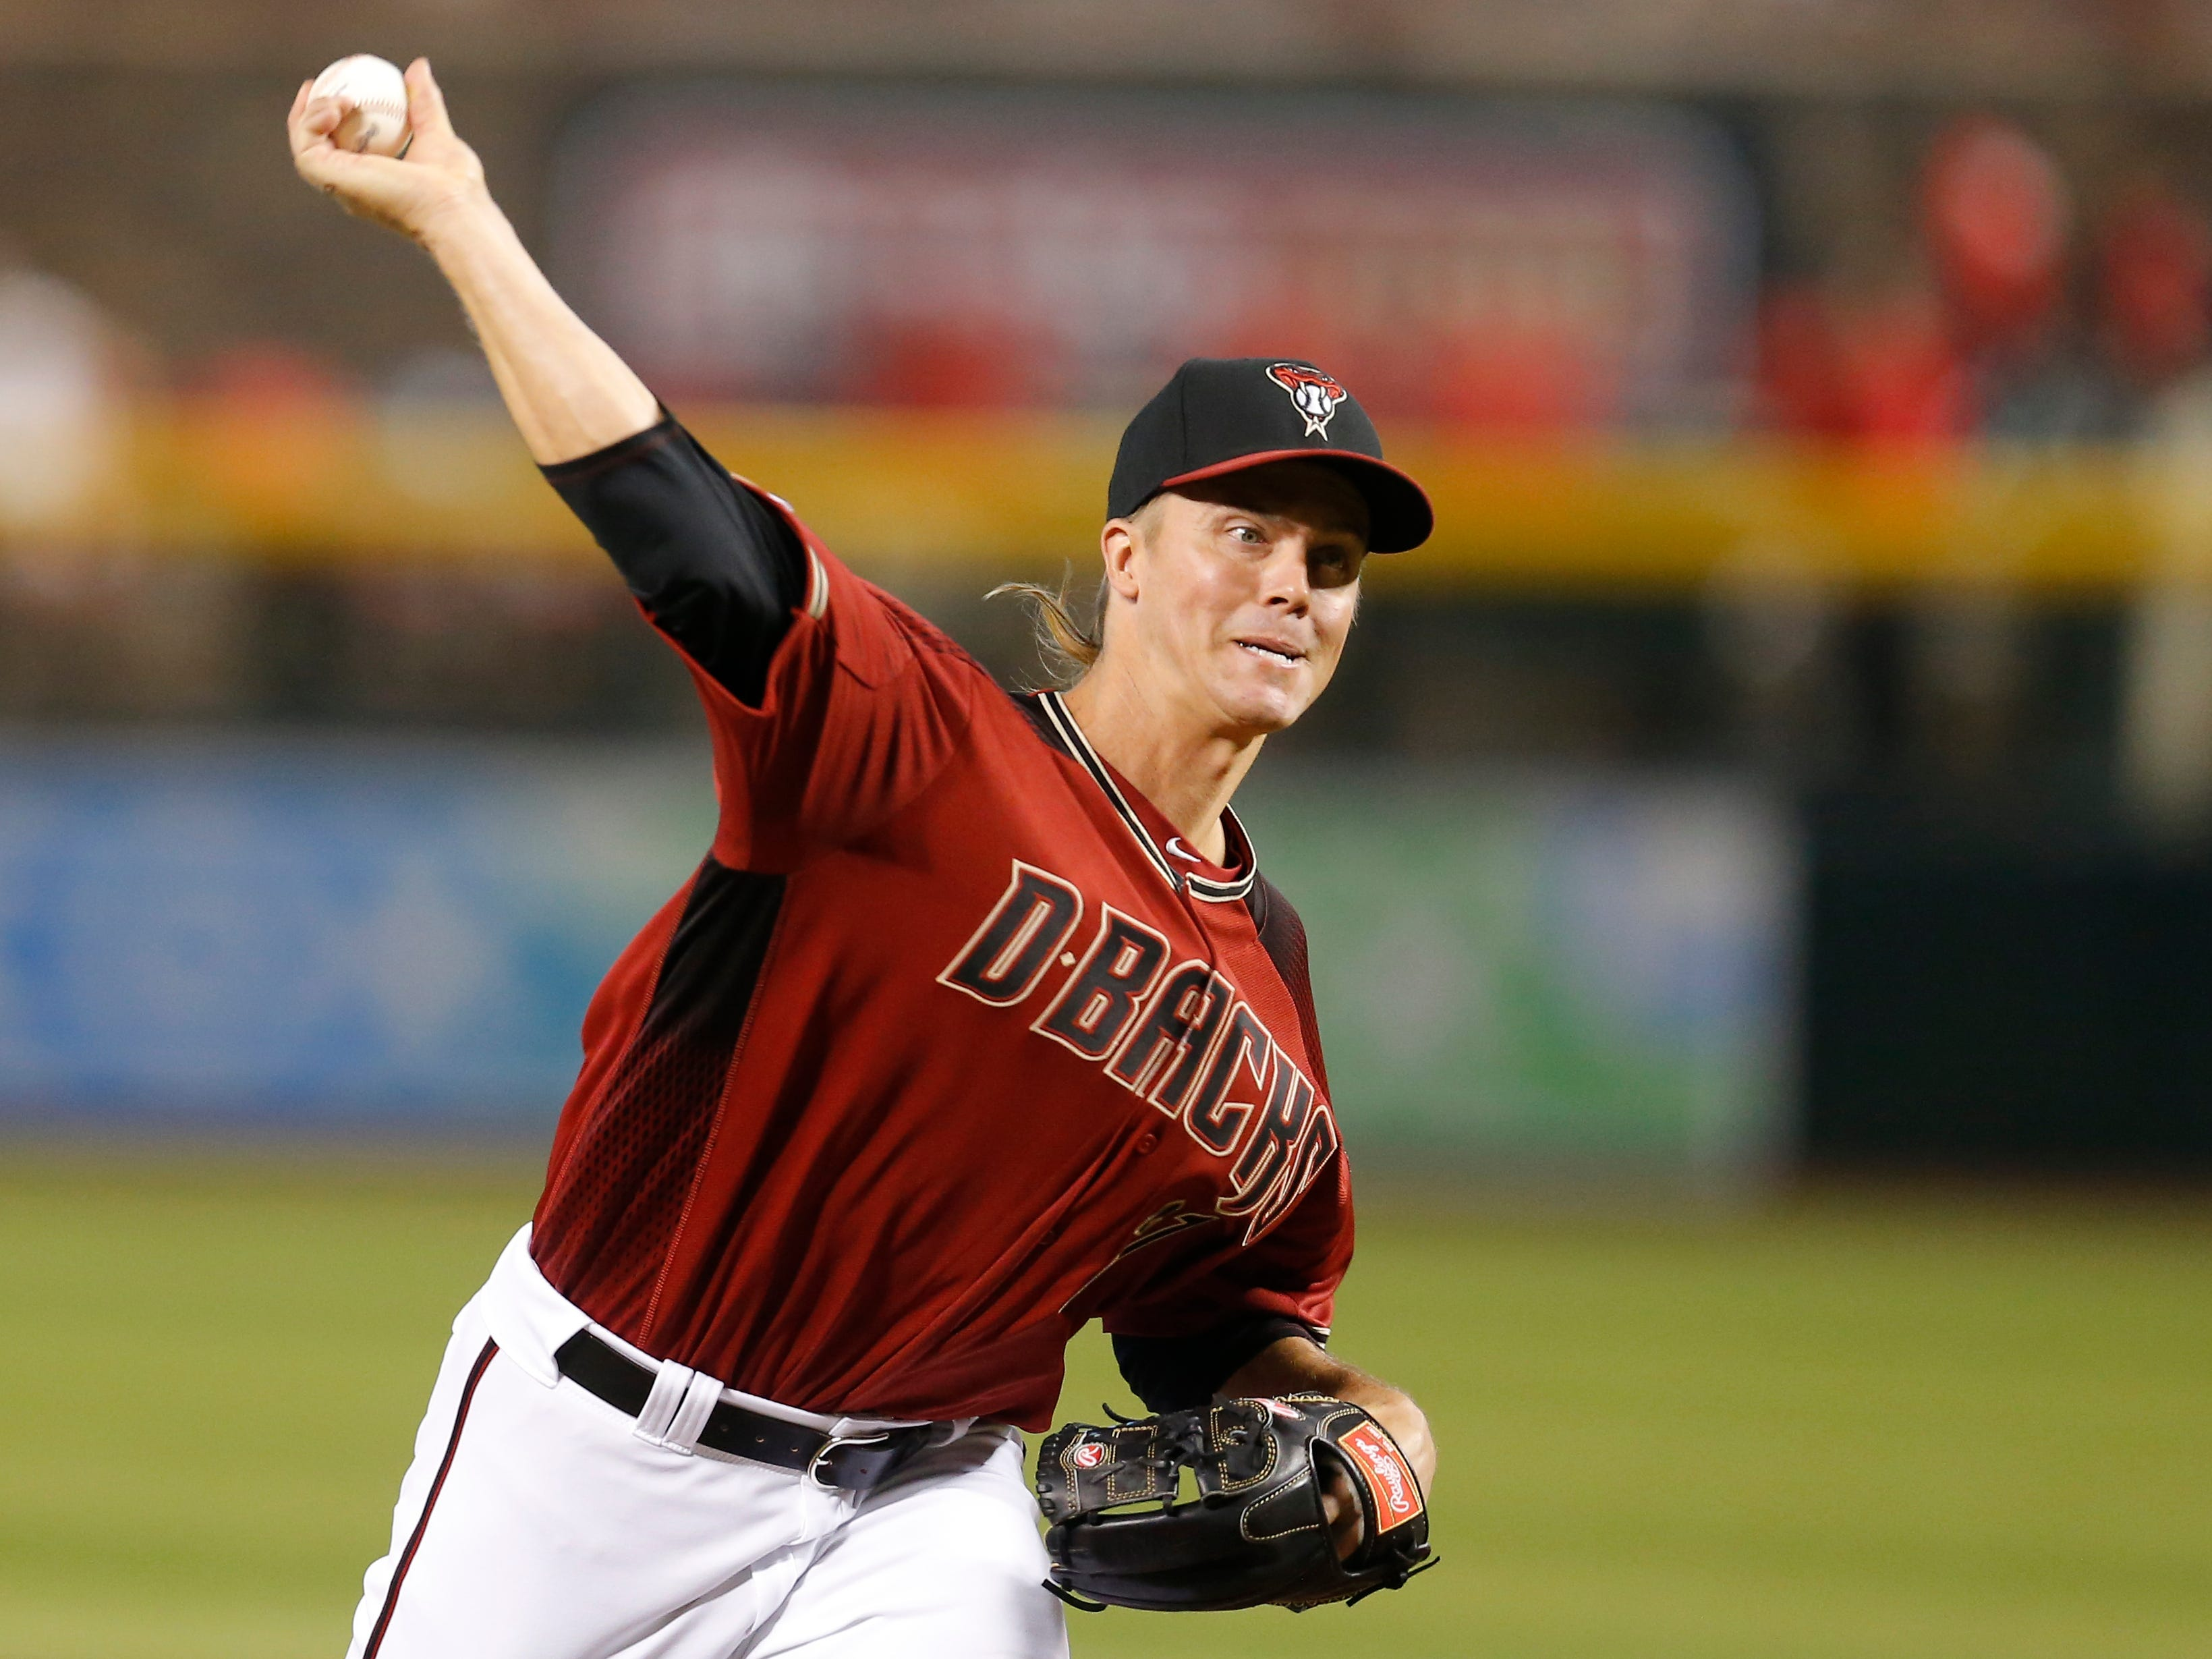 Arizona Diamondbacks starting pitcher Zack Greinke (21) in the first inning during a baseball game against the San Diego Padres, Sunday, April 14, 2019, in Phoenix. (AP Photo/Rick Scuteri)